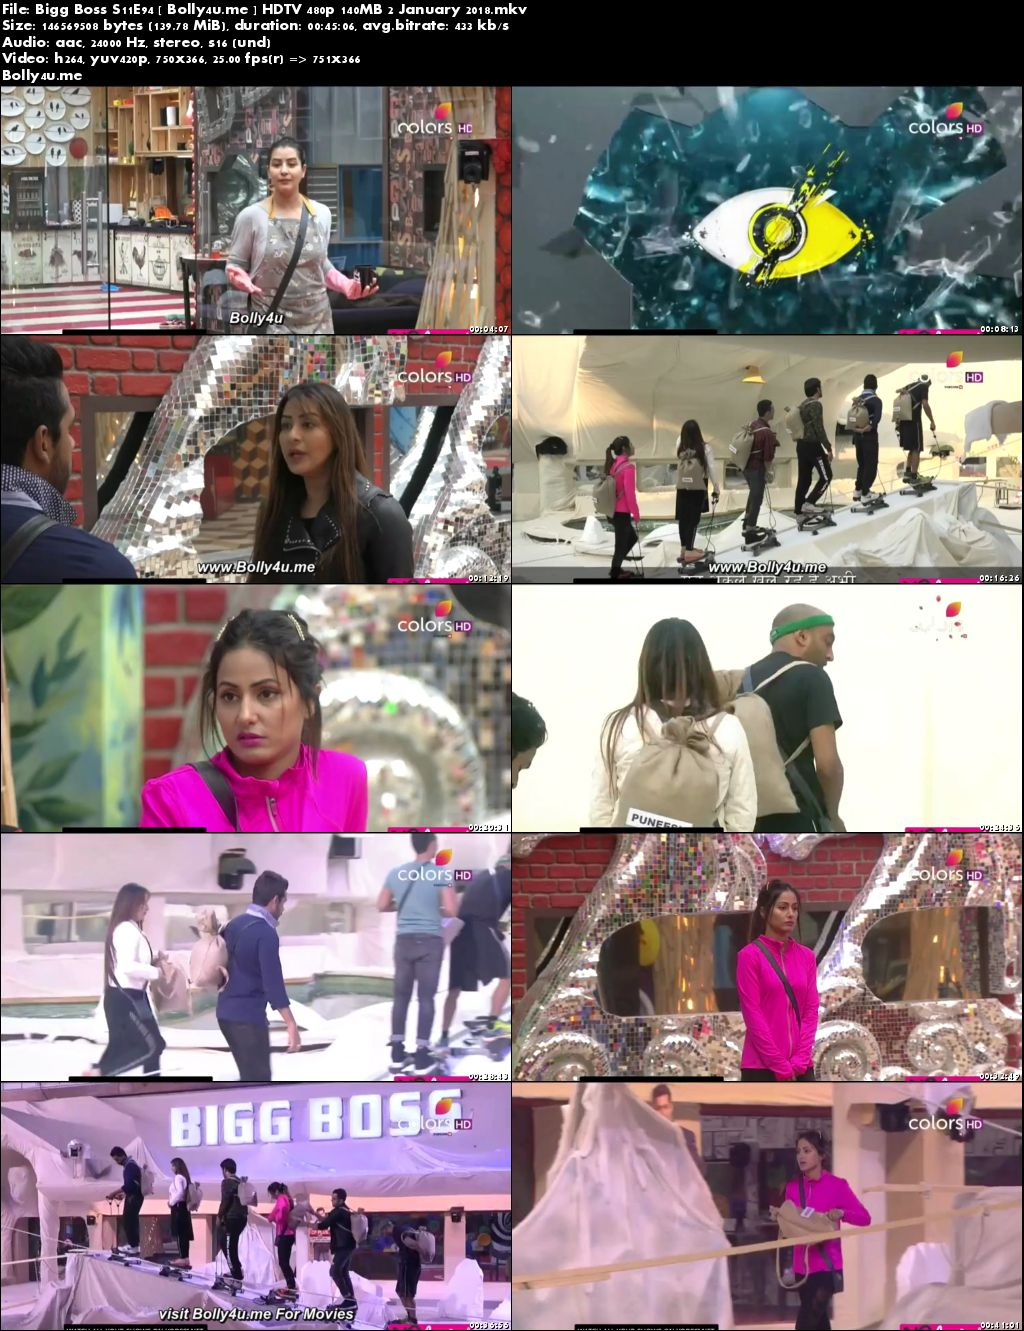 Bigg Boss S11E94 HDTV 480p 140MB 02 January 2018 Download